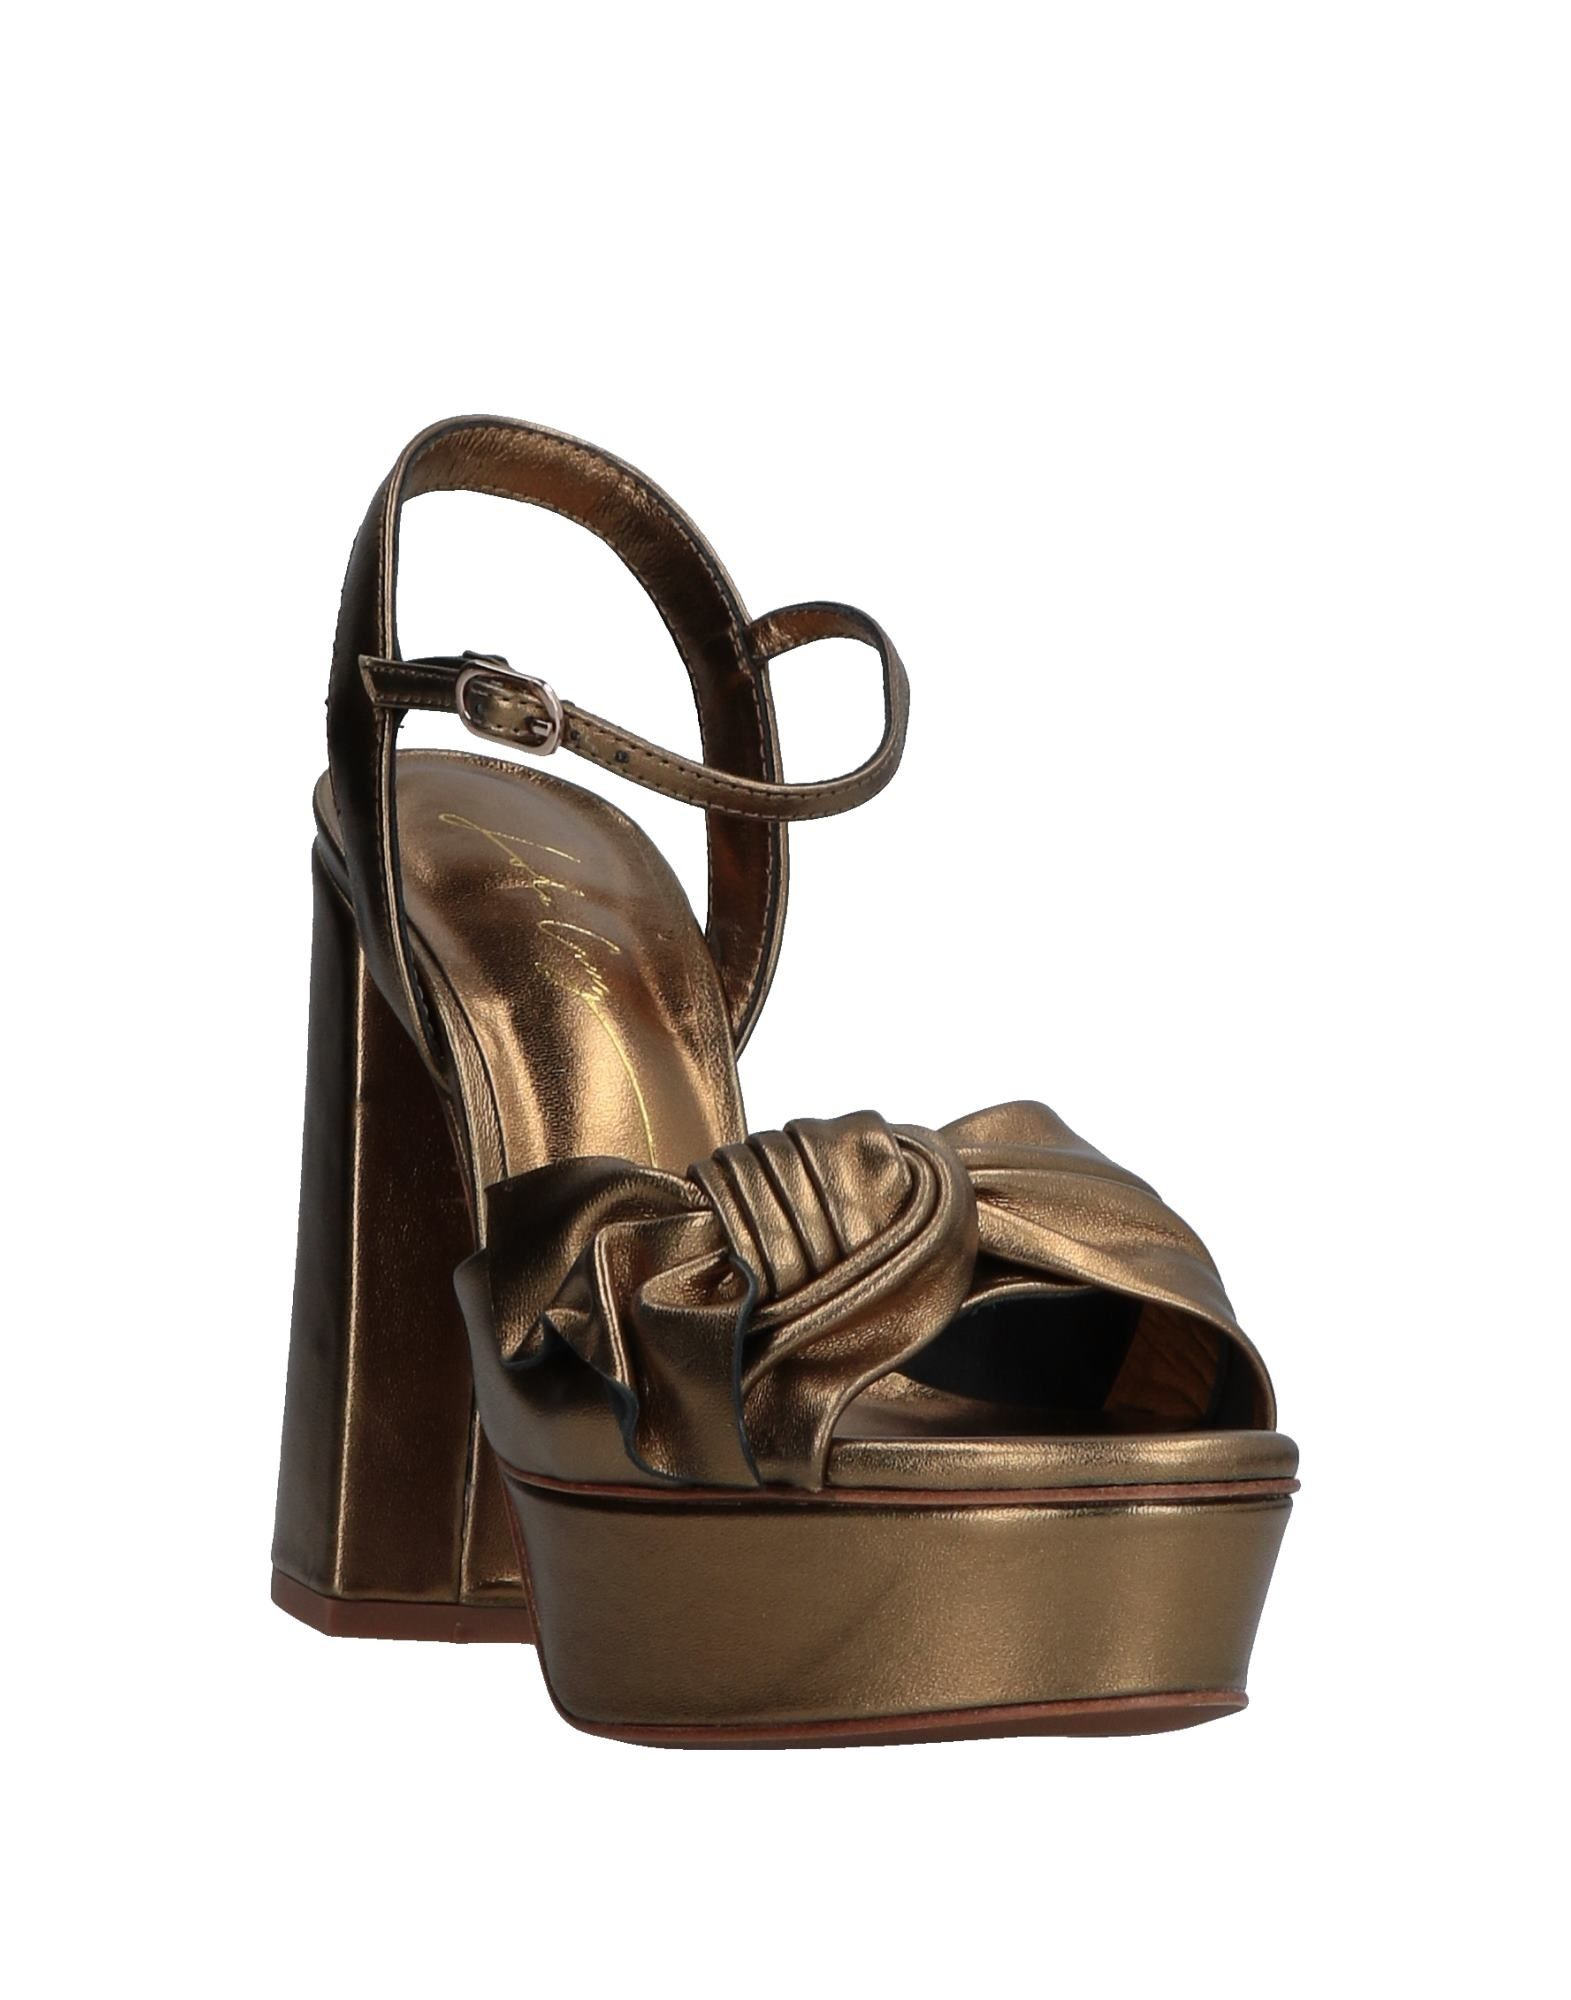 Lola Cruz Sandals - Women Lola Cruz Sandals Sandals Sandals online on  United Kingdom - 11564030OH 041a39